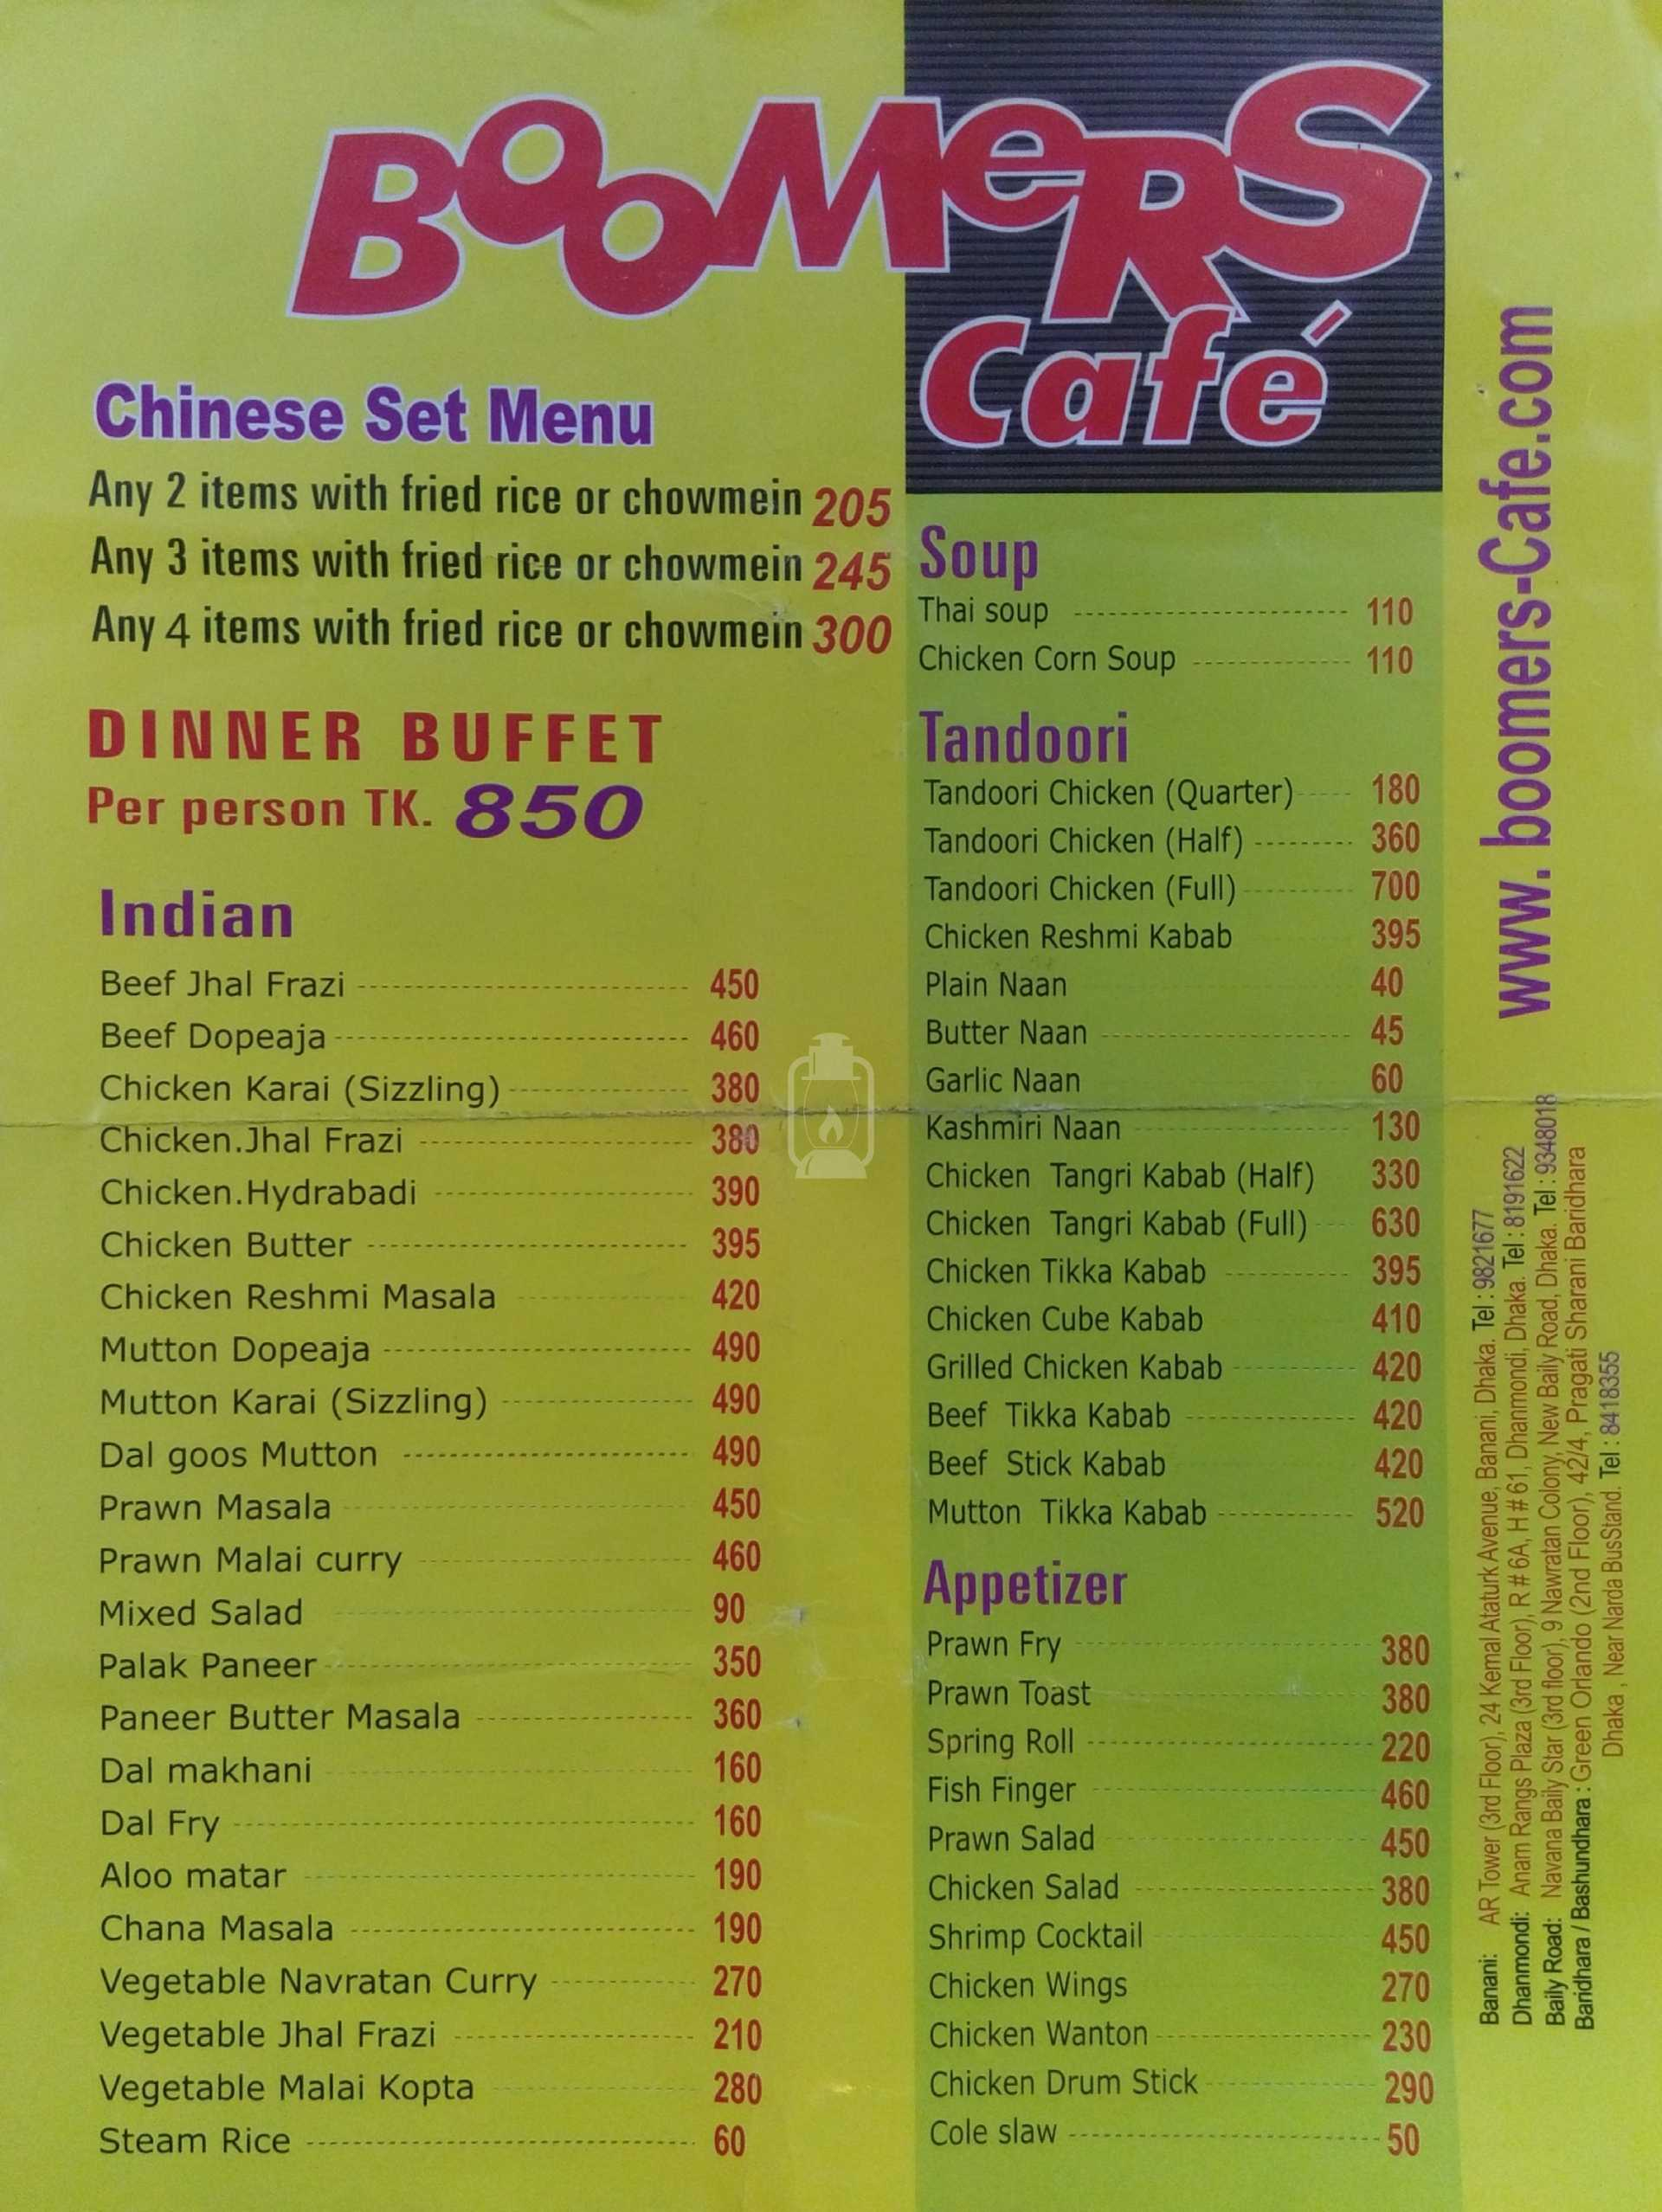 Boomers cafe in satmasjid road dhaka harriken for Floor 6 reloaded banani menu